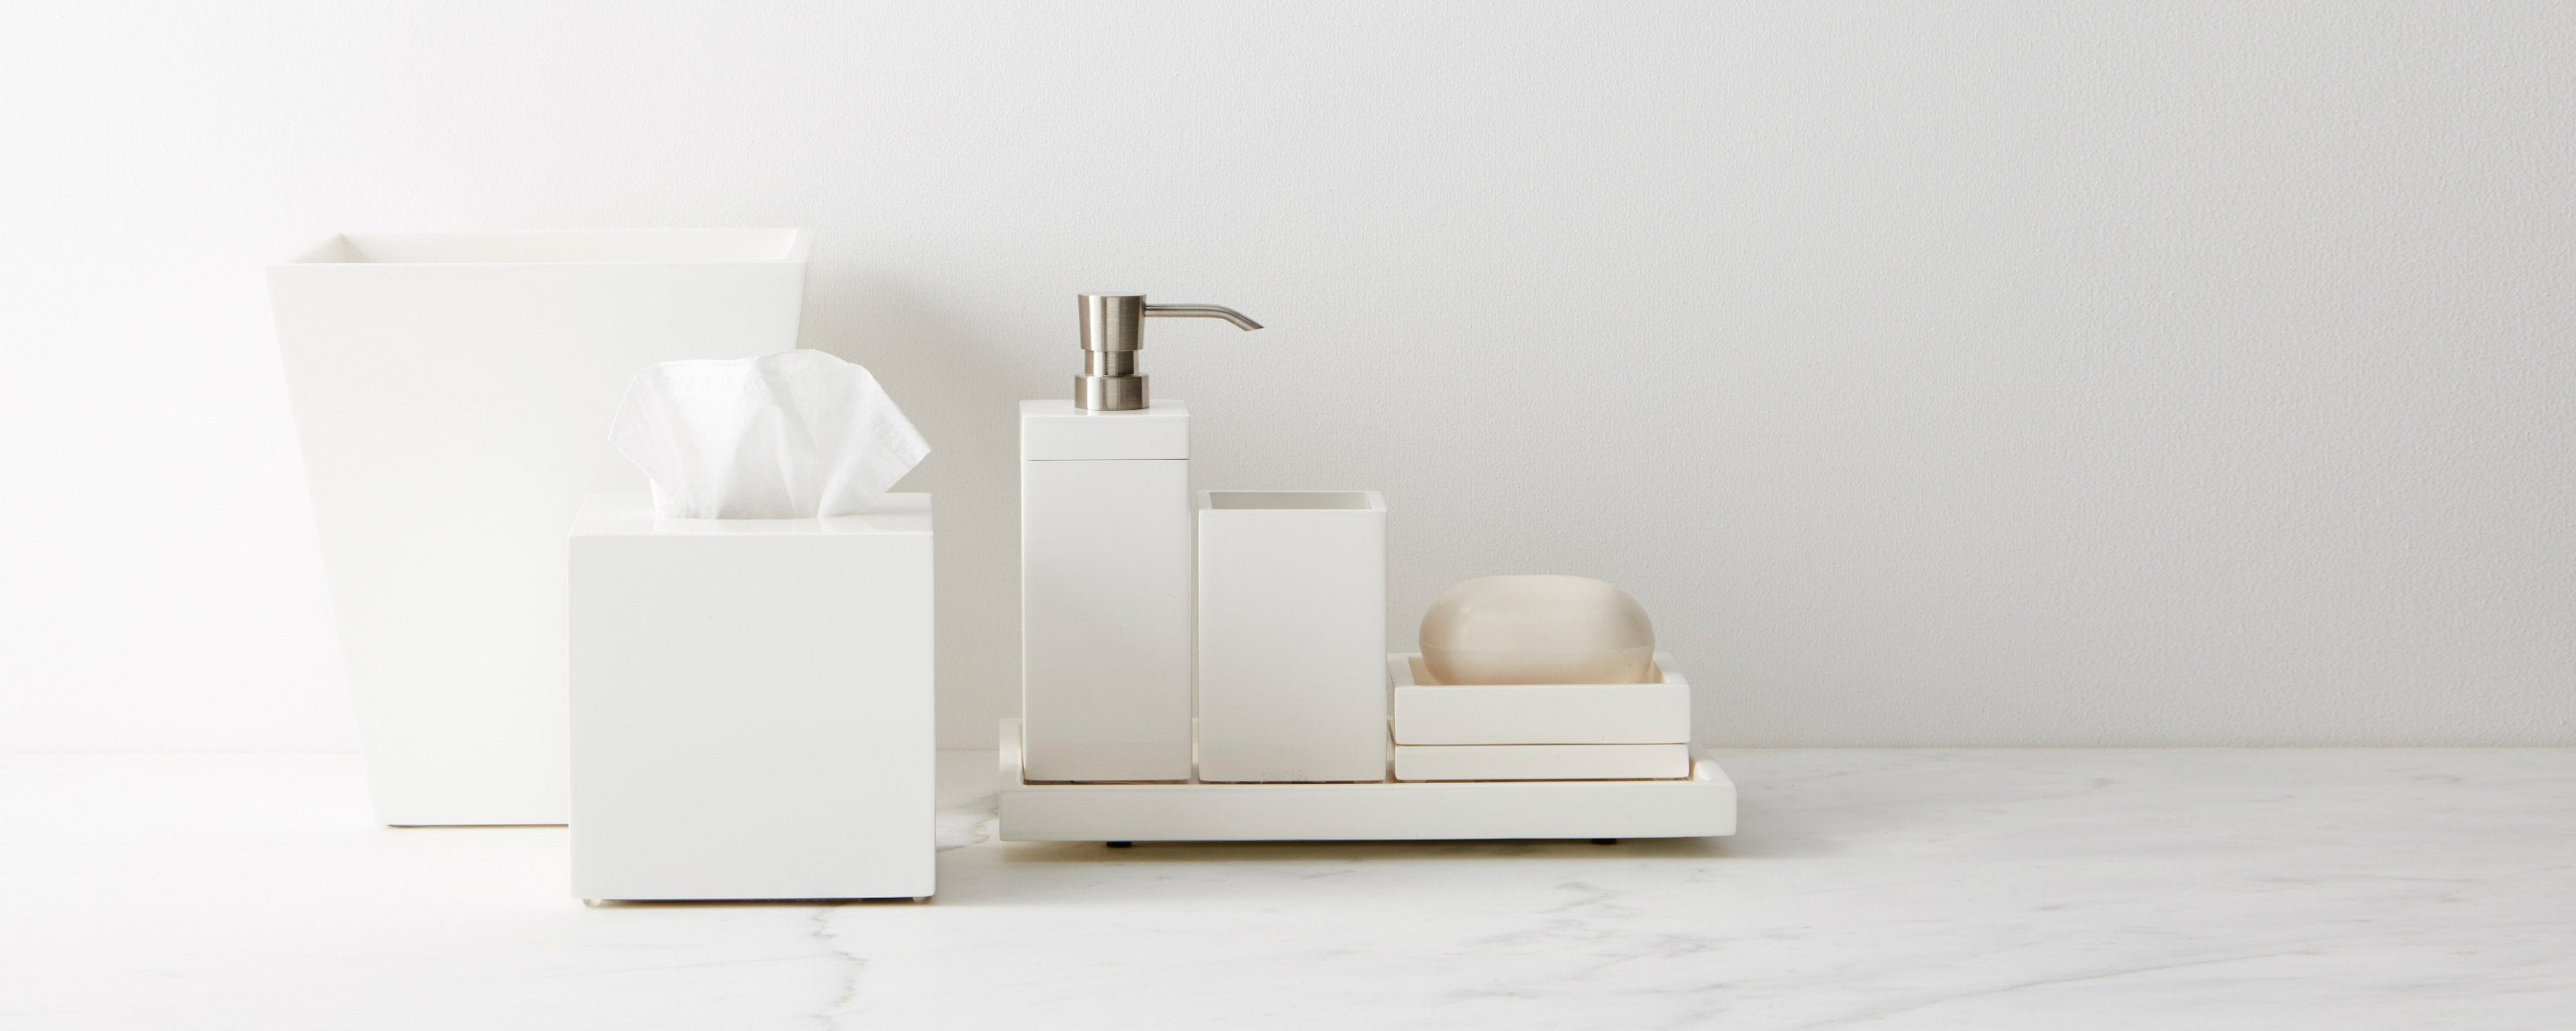 white lacquer bath collection